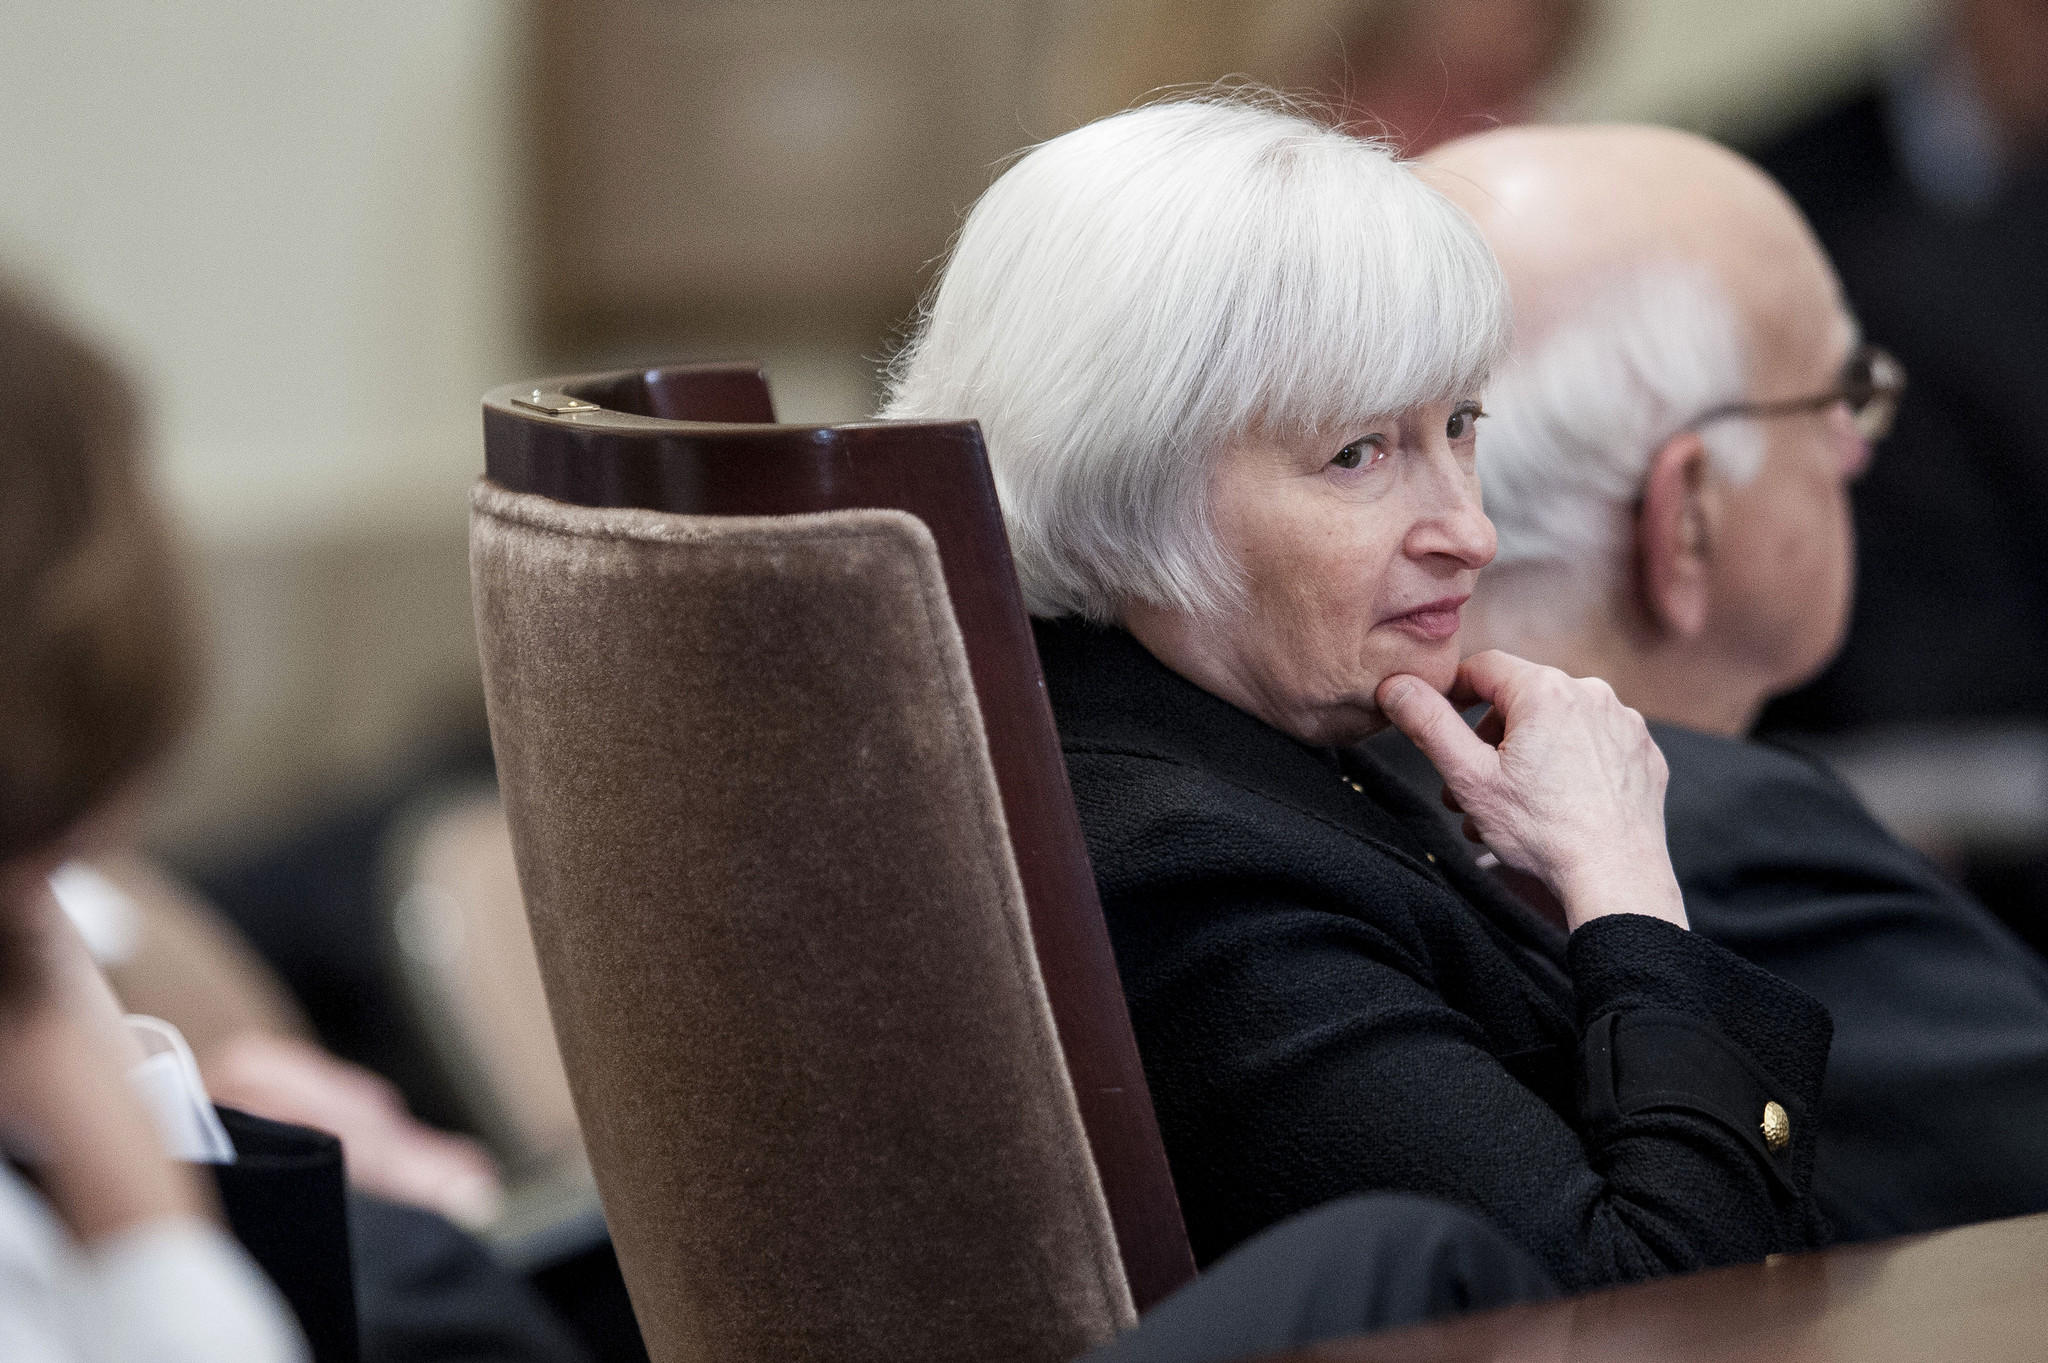 sns-rt-us-usa-fed-yellen-20131210-001